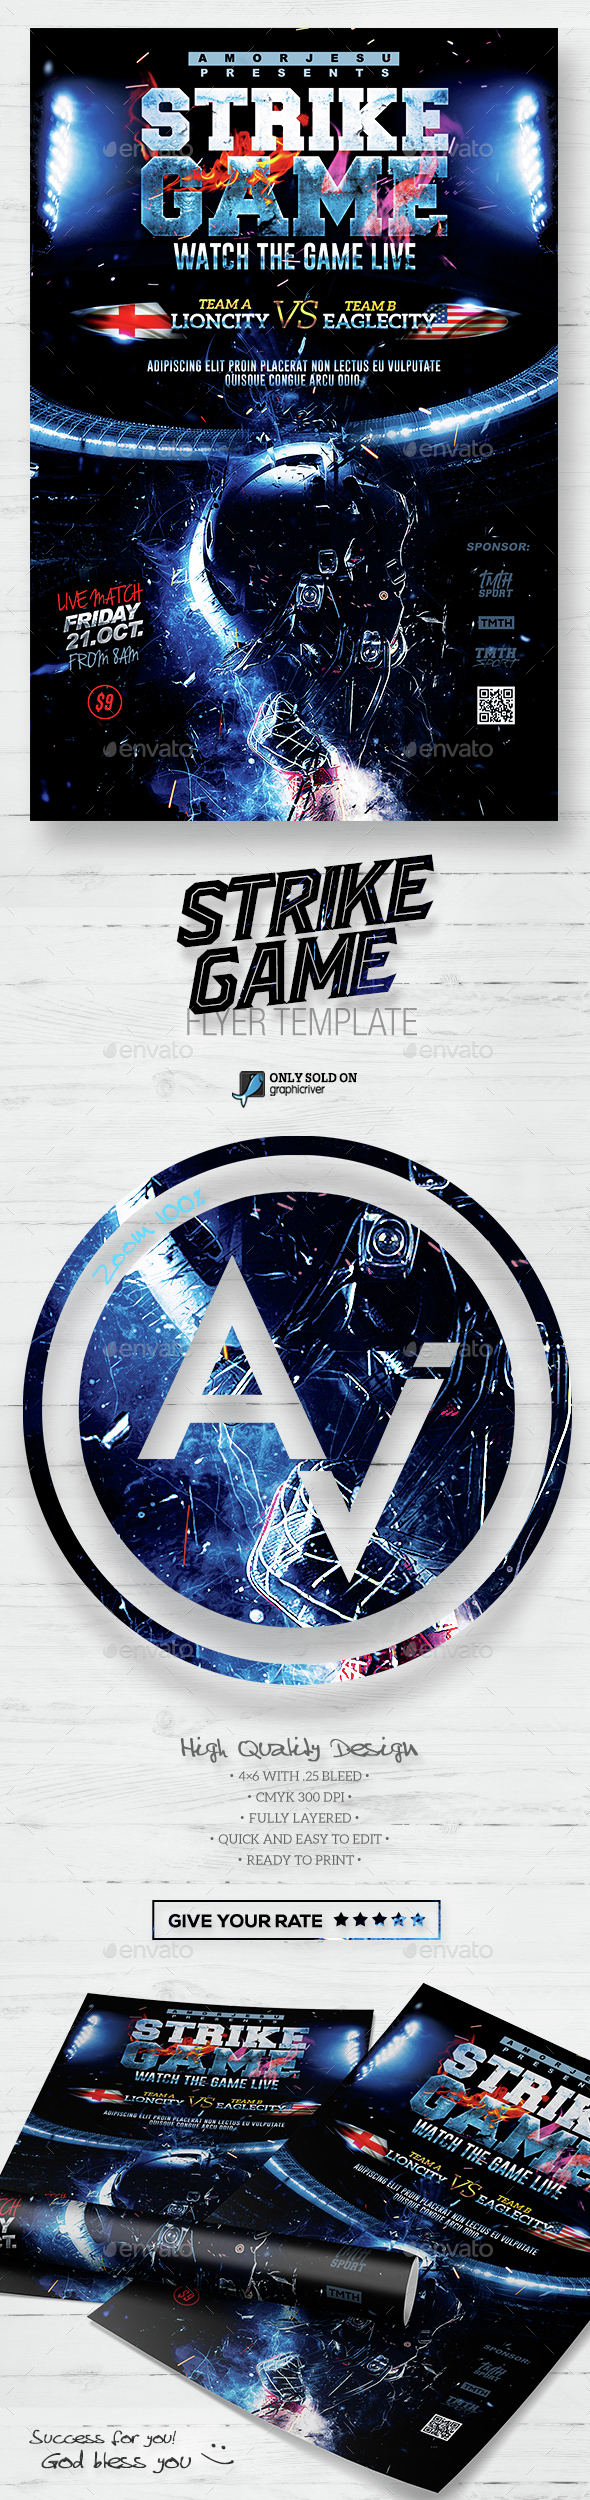 Strike Game Flyer Template - Sports Events